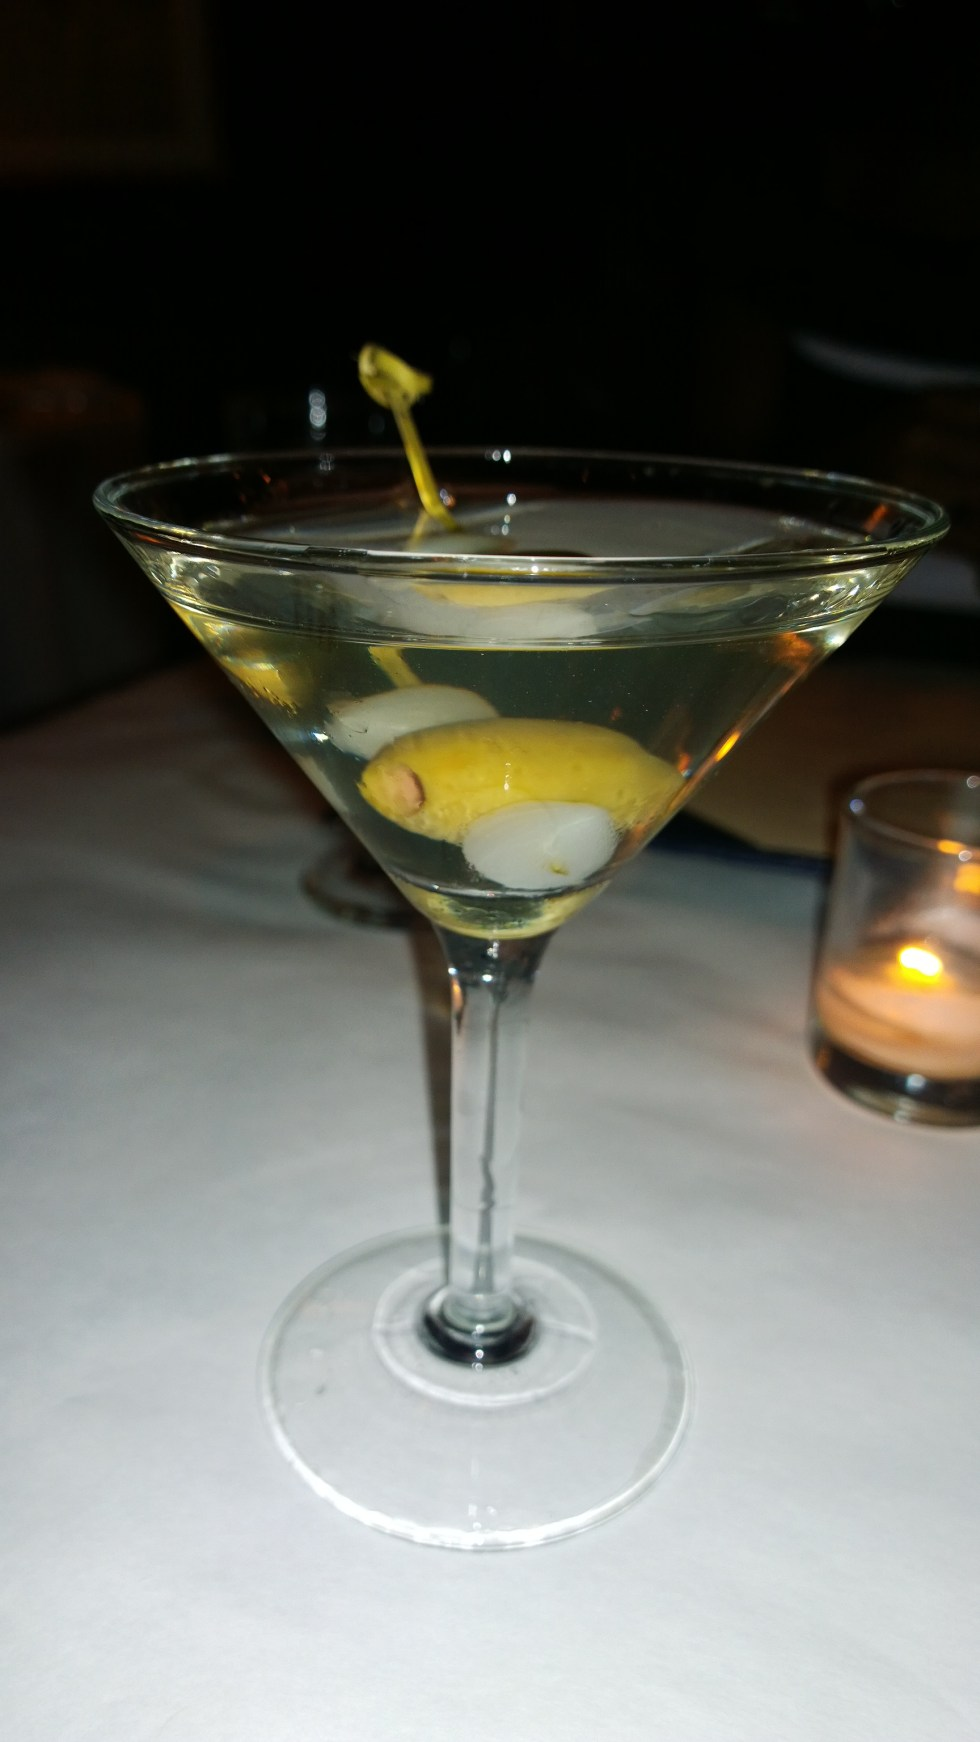 Bill's Food and Drink - Gibson Martini